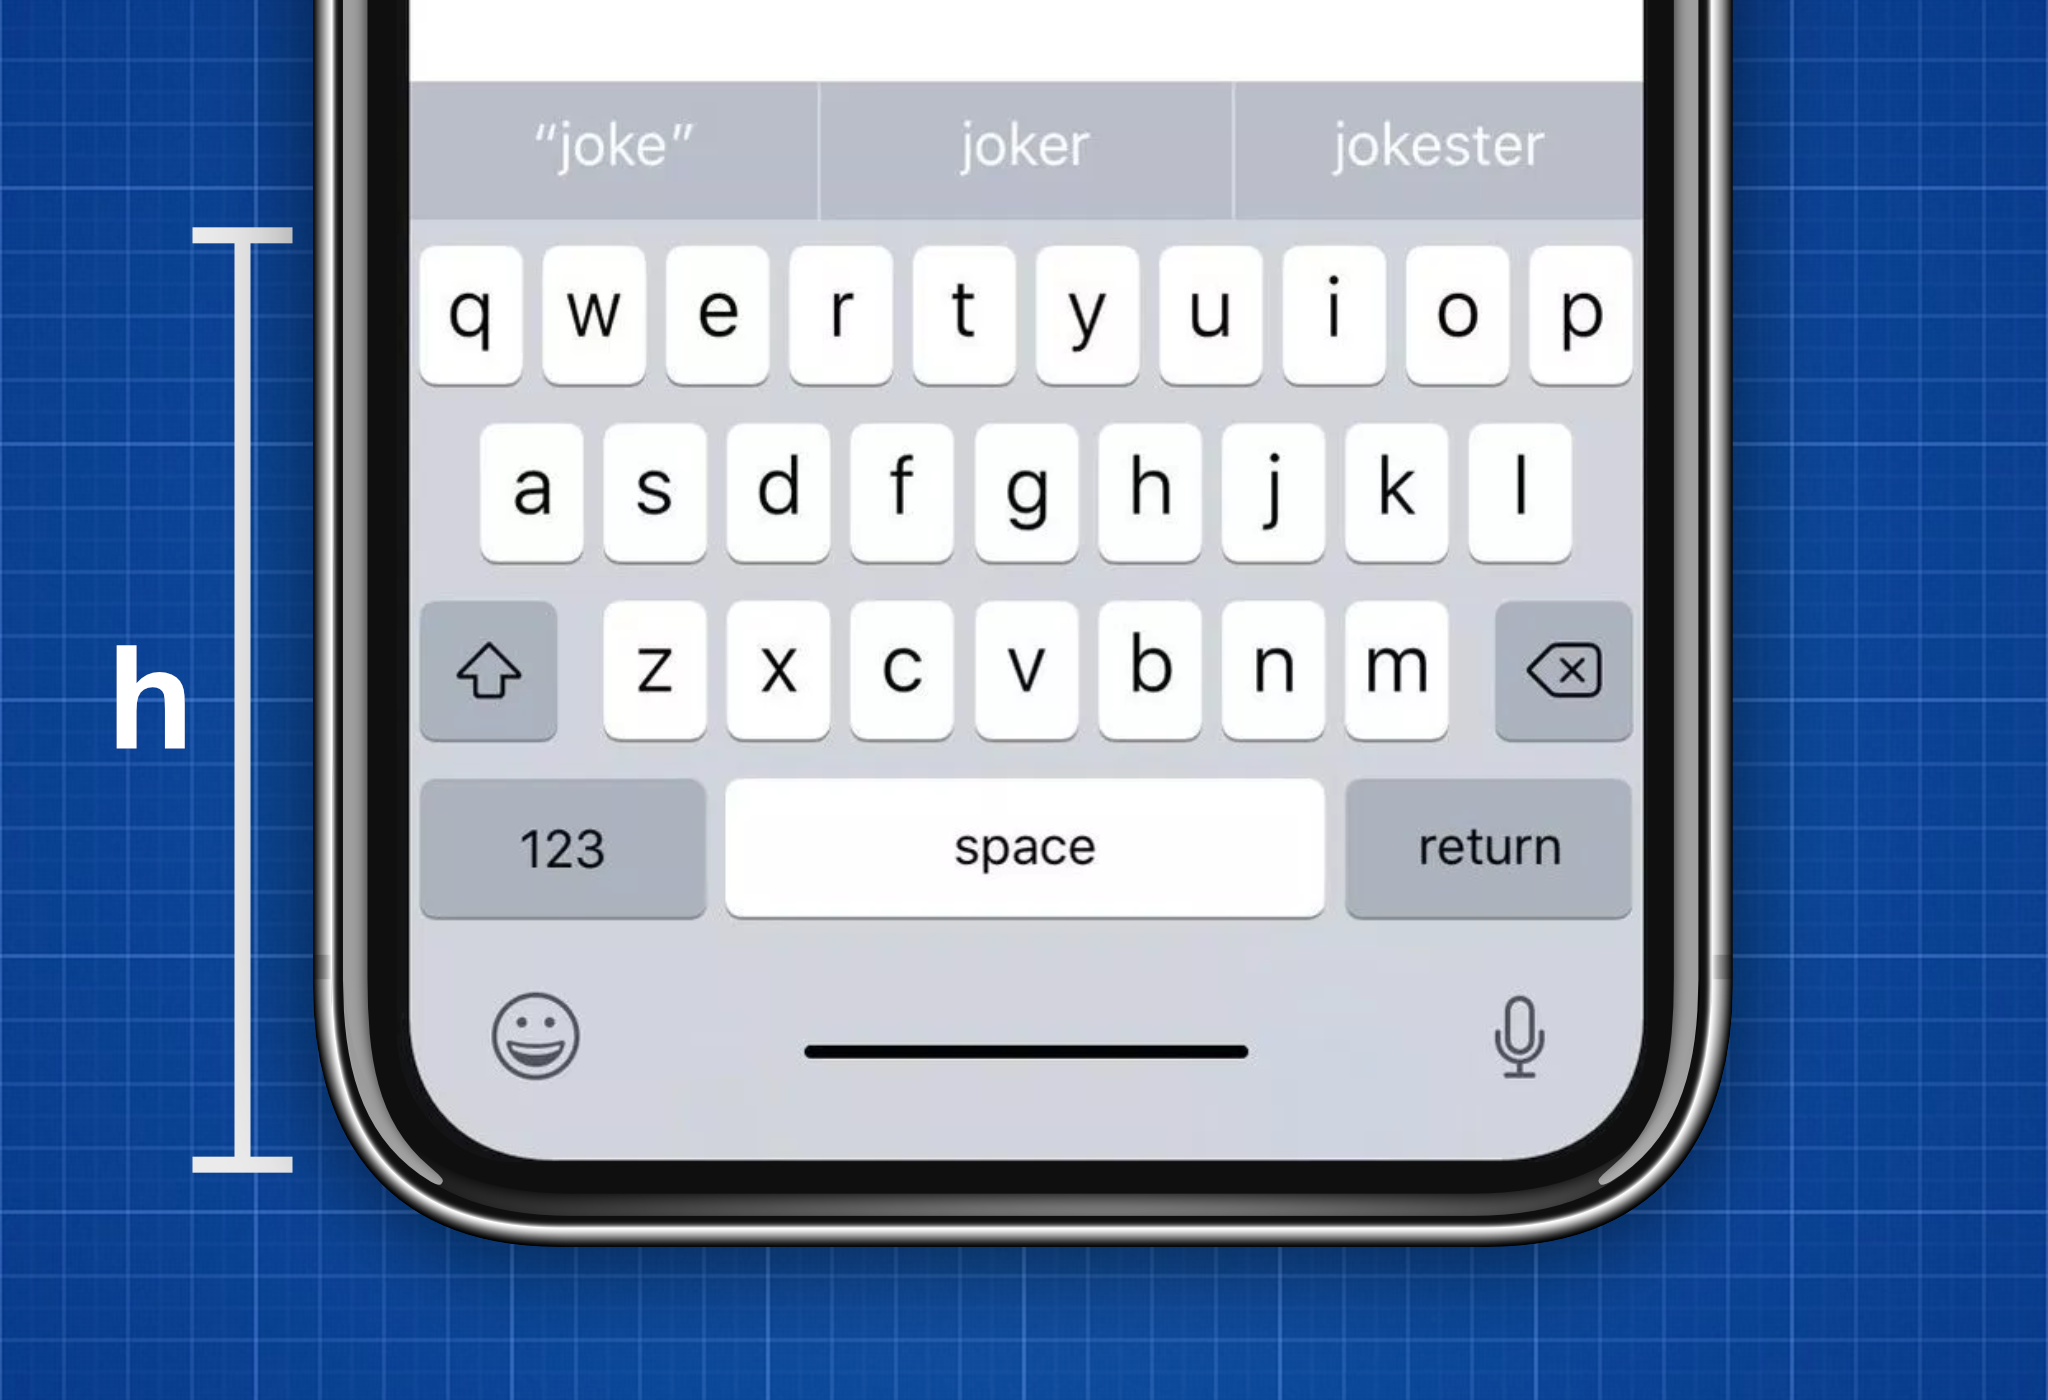 Fixing Common Issues With the iOS Keyboard